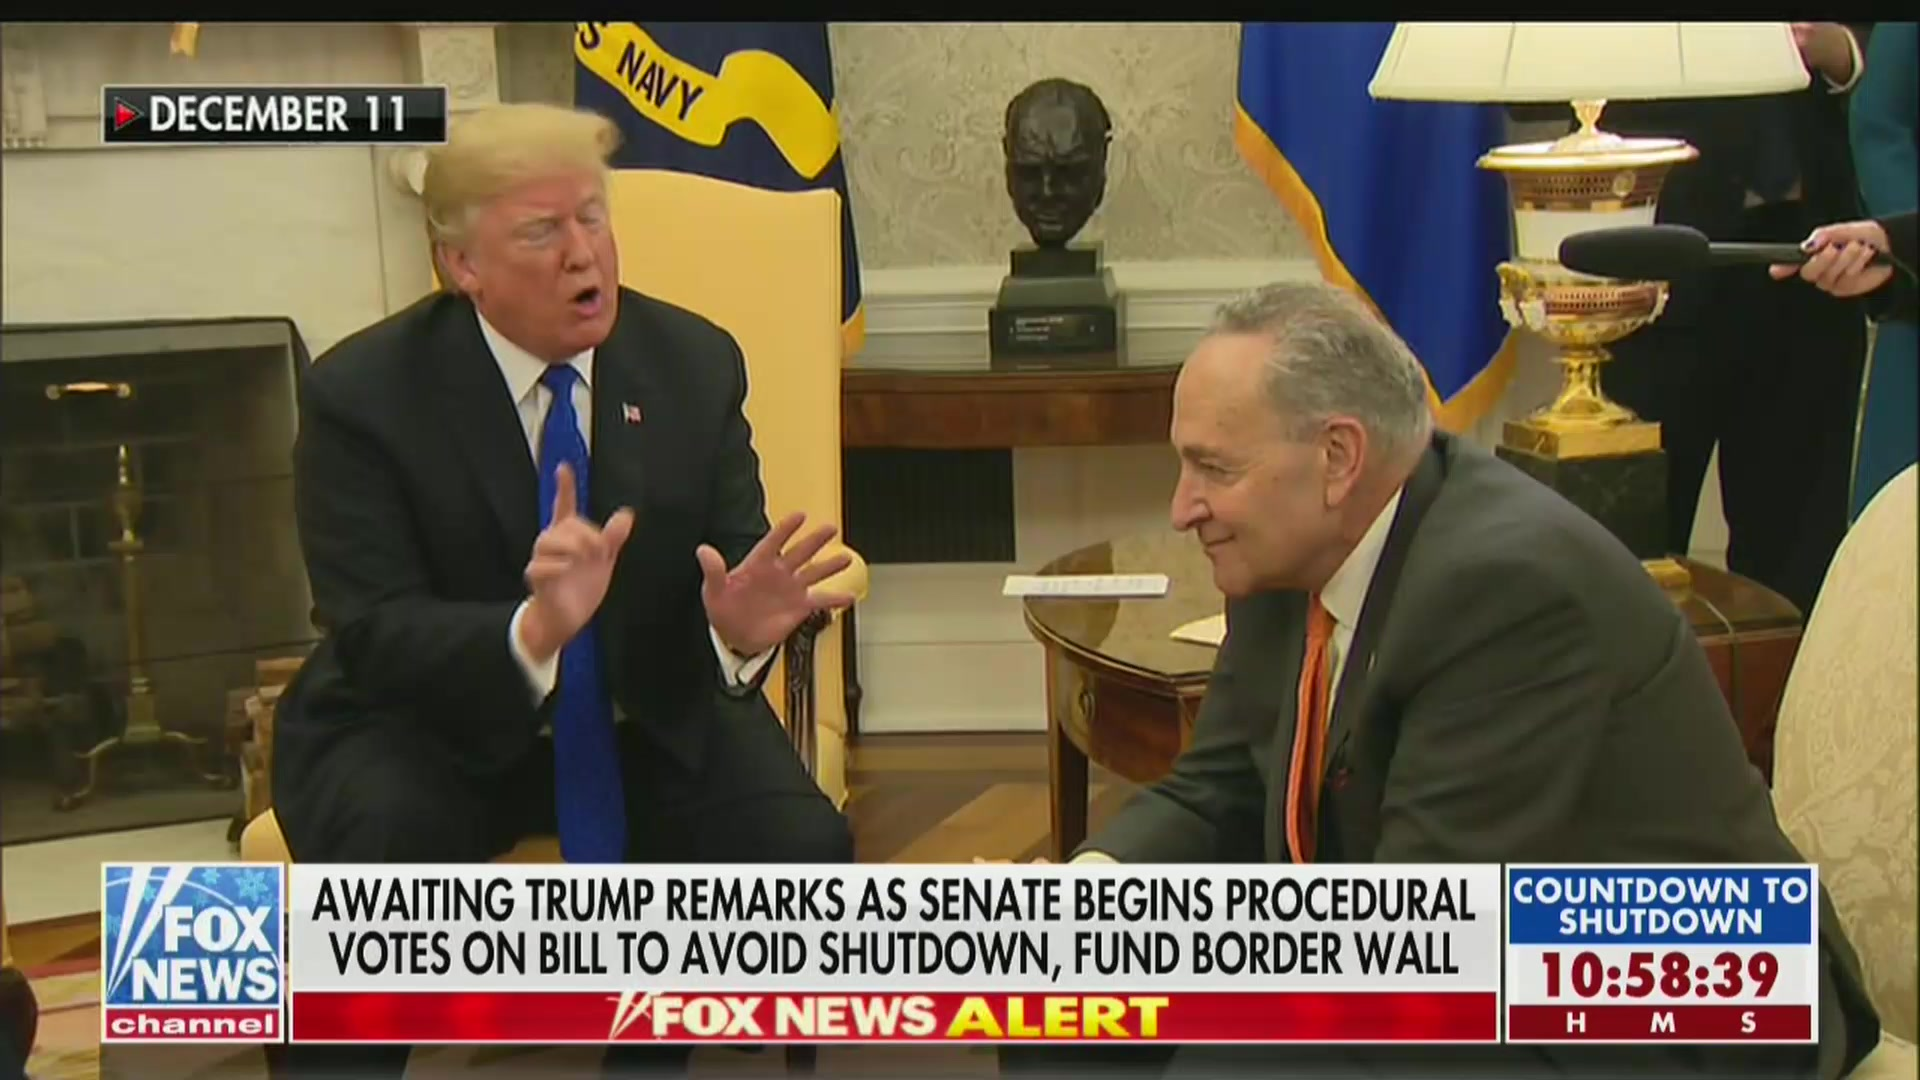 Fox News Reminds Viewers That Trump Said He'd Take Blame For Government Shutdown